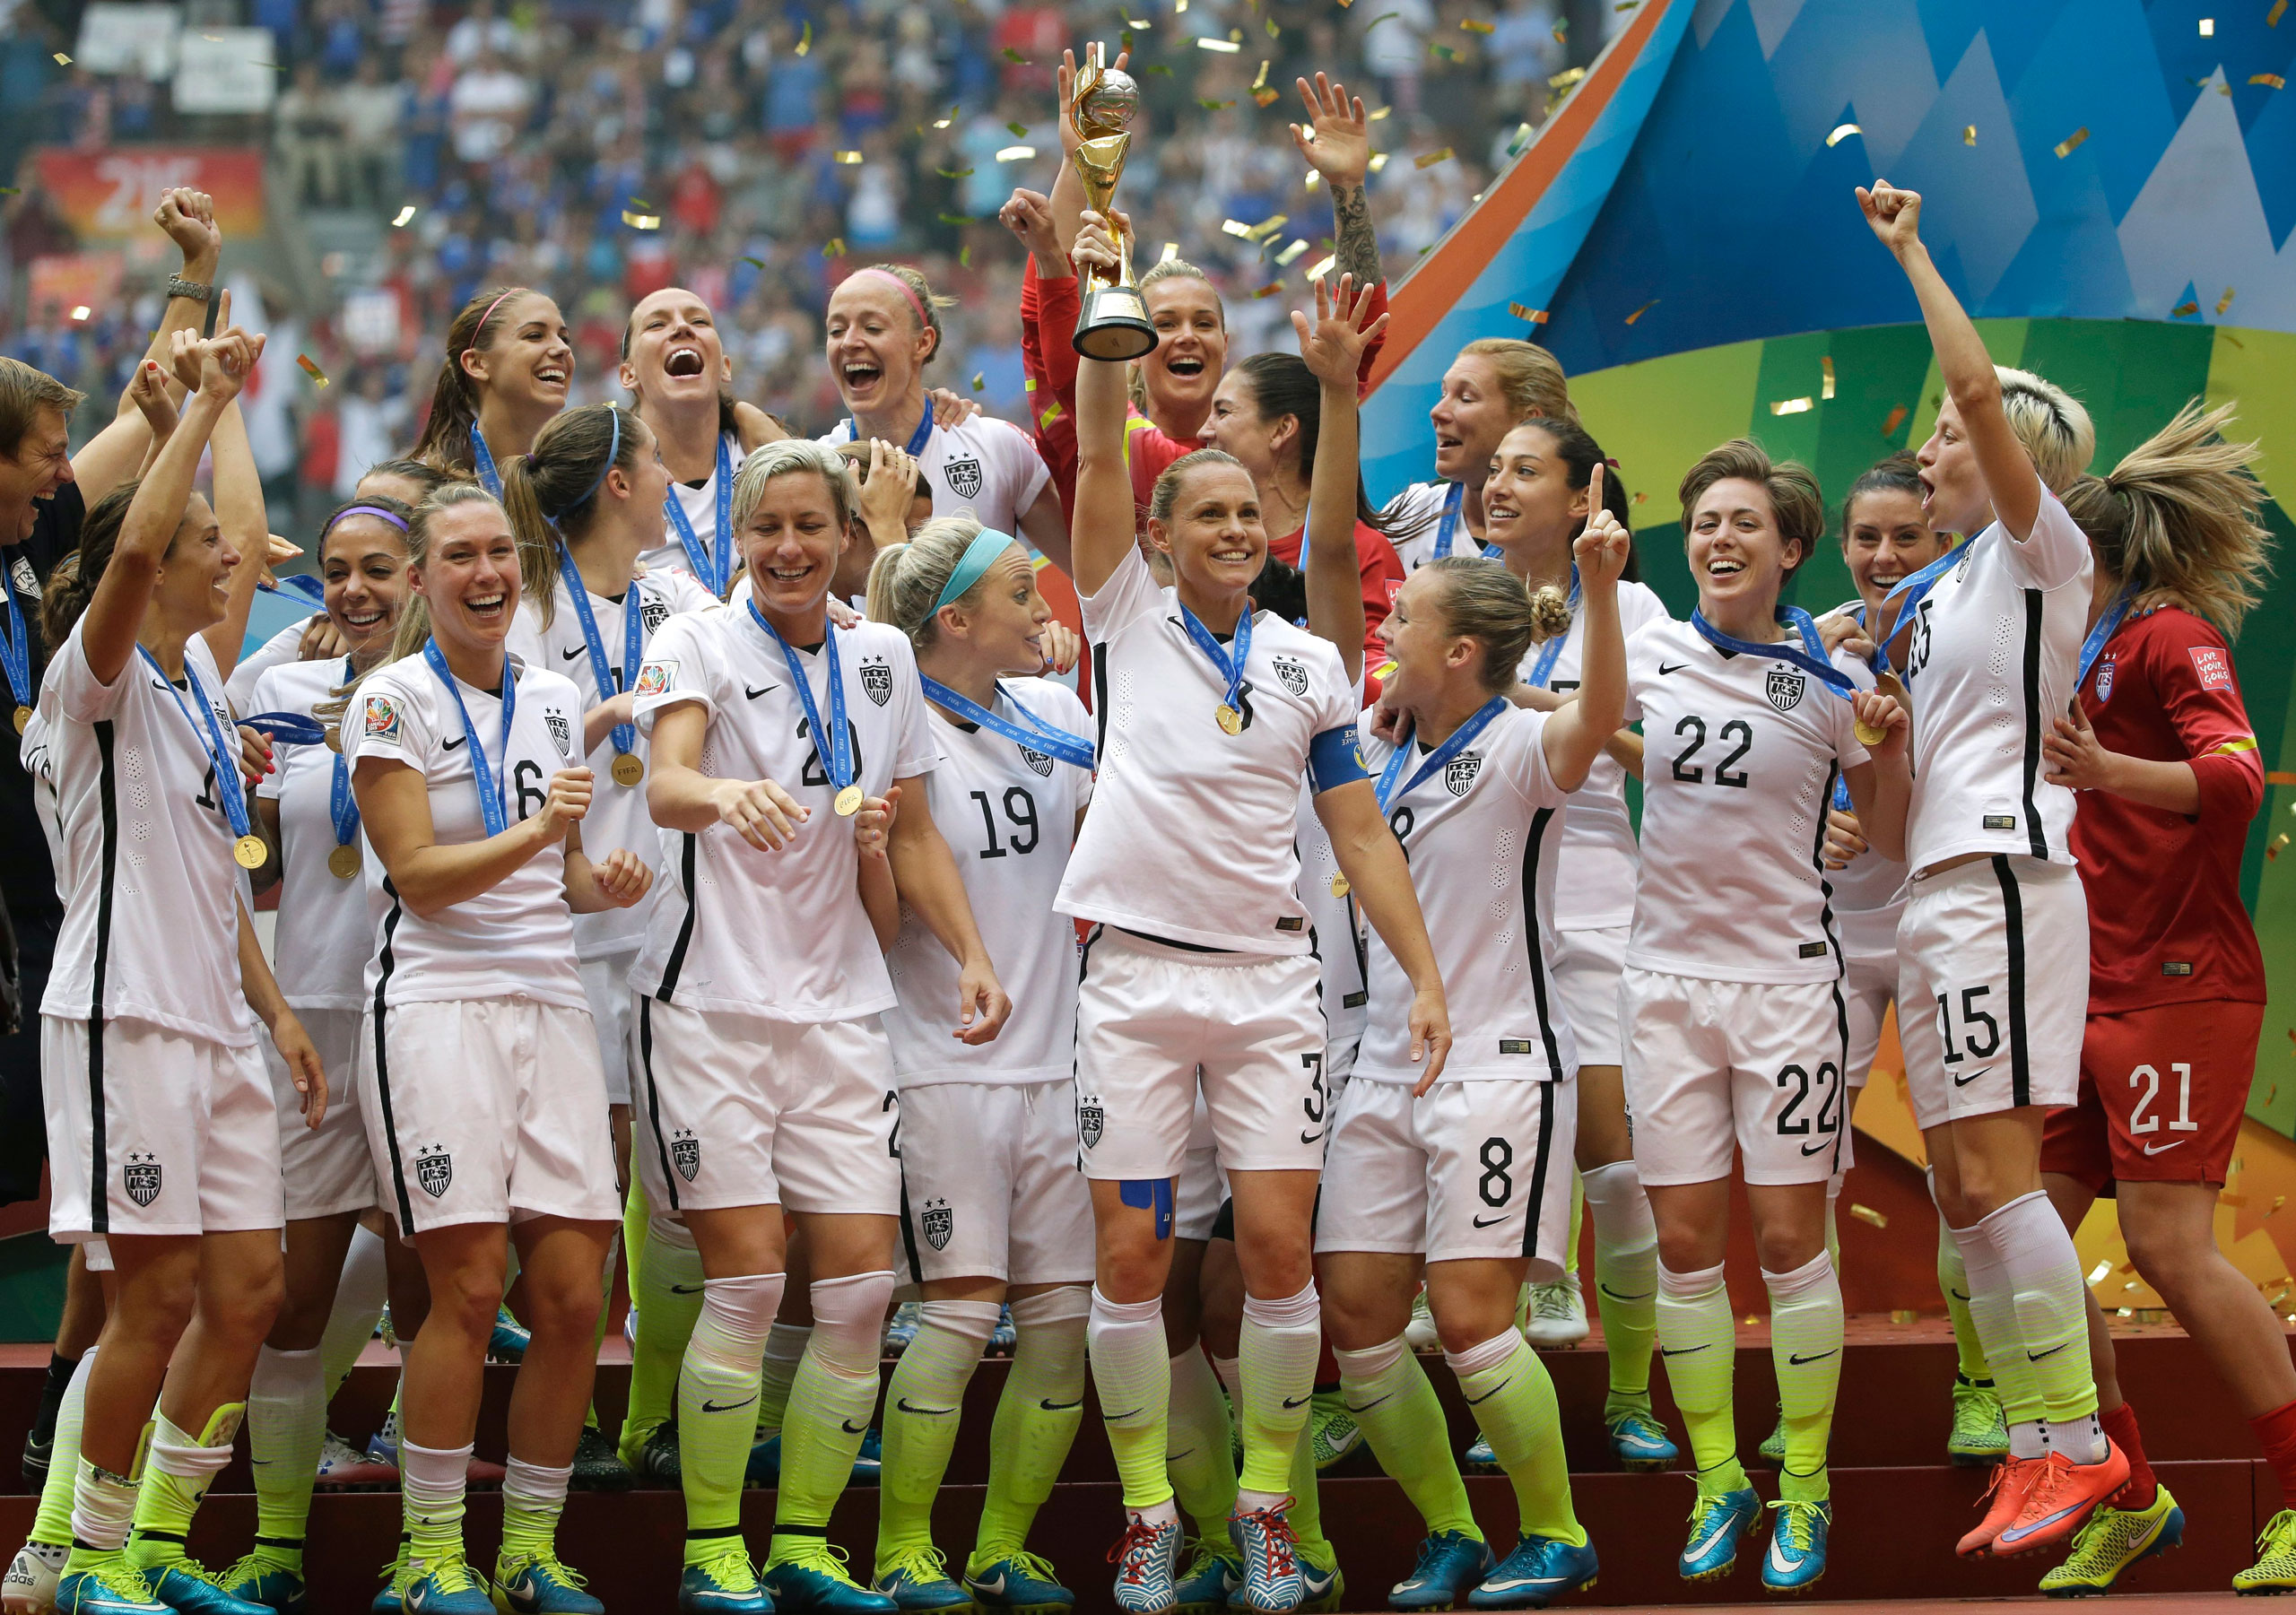 The U.S.A. Women's National Team celebrates with the trophy after they beat Japan 5-2 in the final match of the 2015 FIFA Women's World Cup at the BC Place Stadium in Vancouver on July 5, 2015.